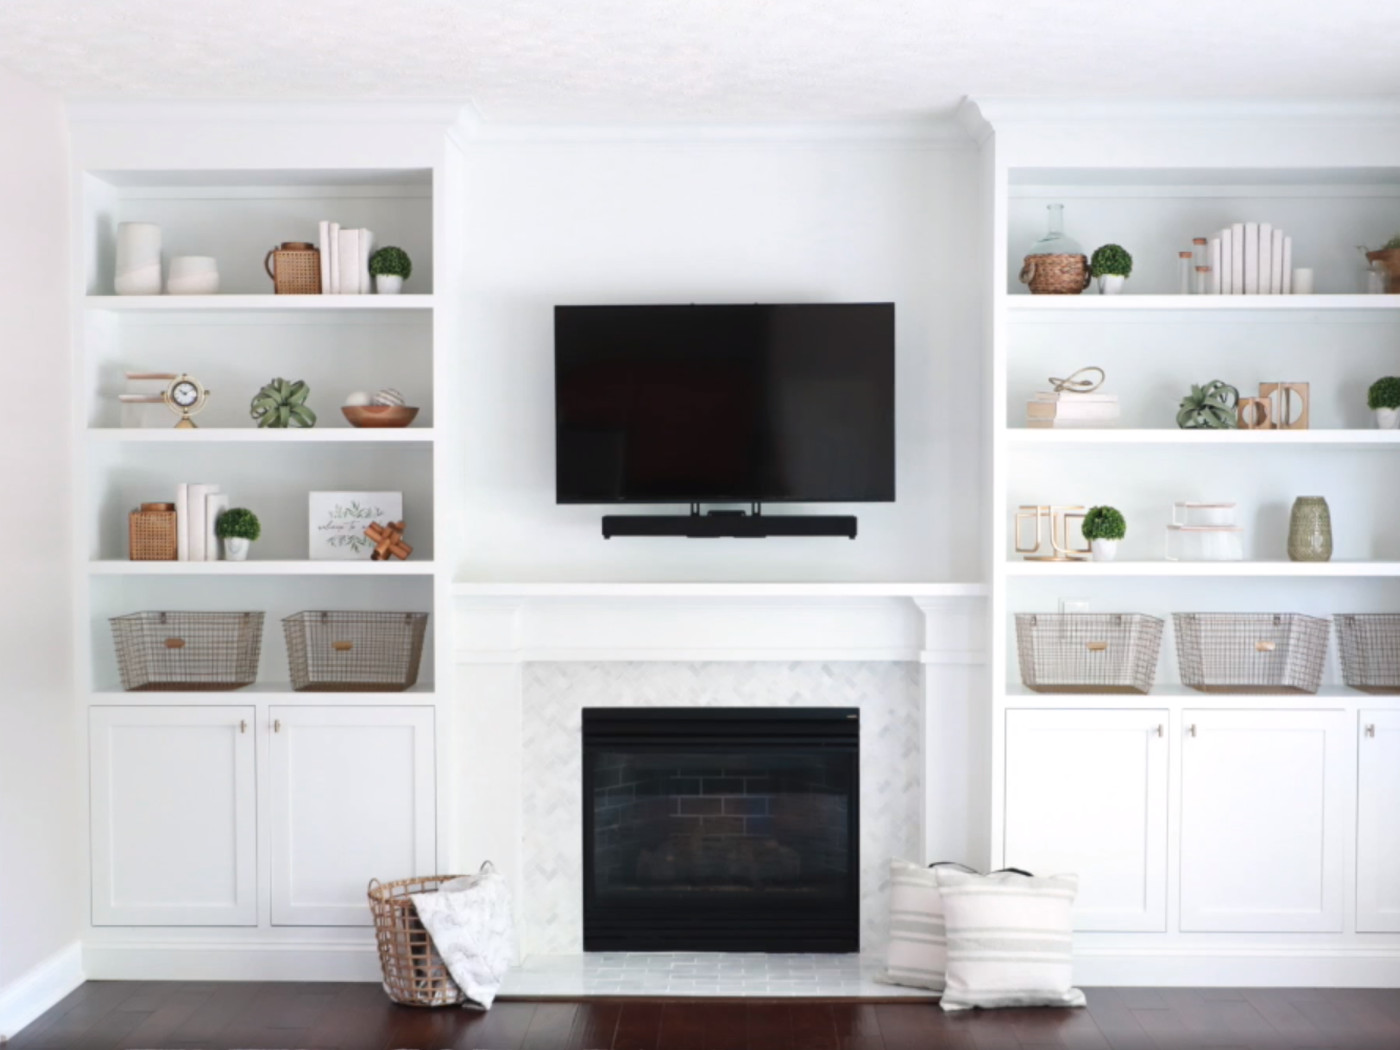 Build A Custom Built In Shelving Unit This Old House